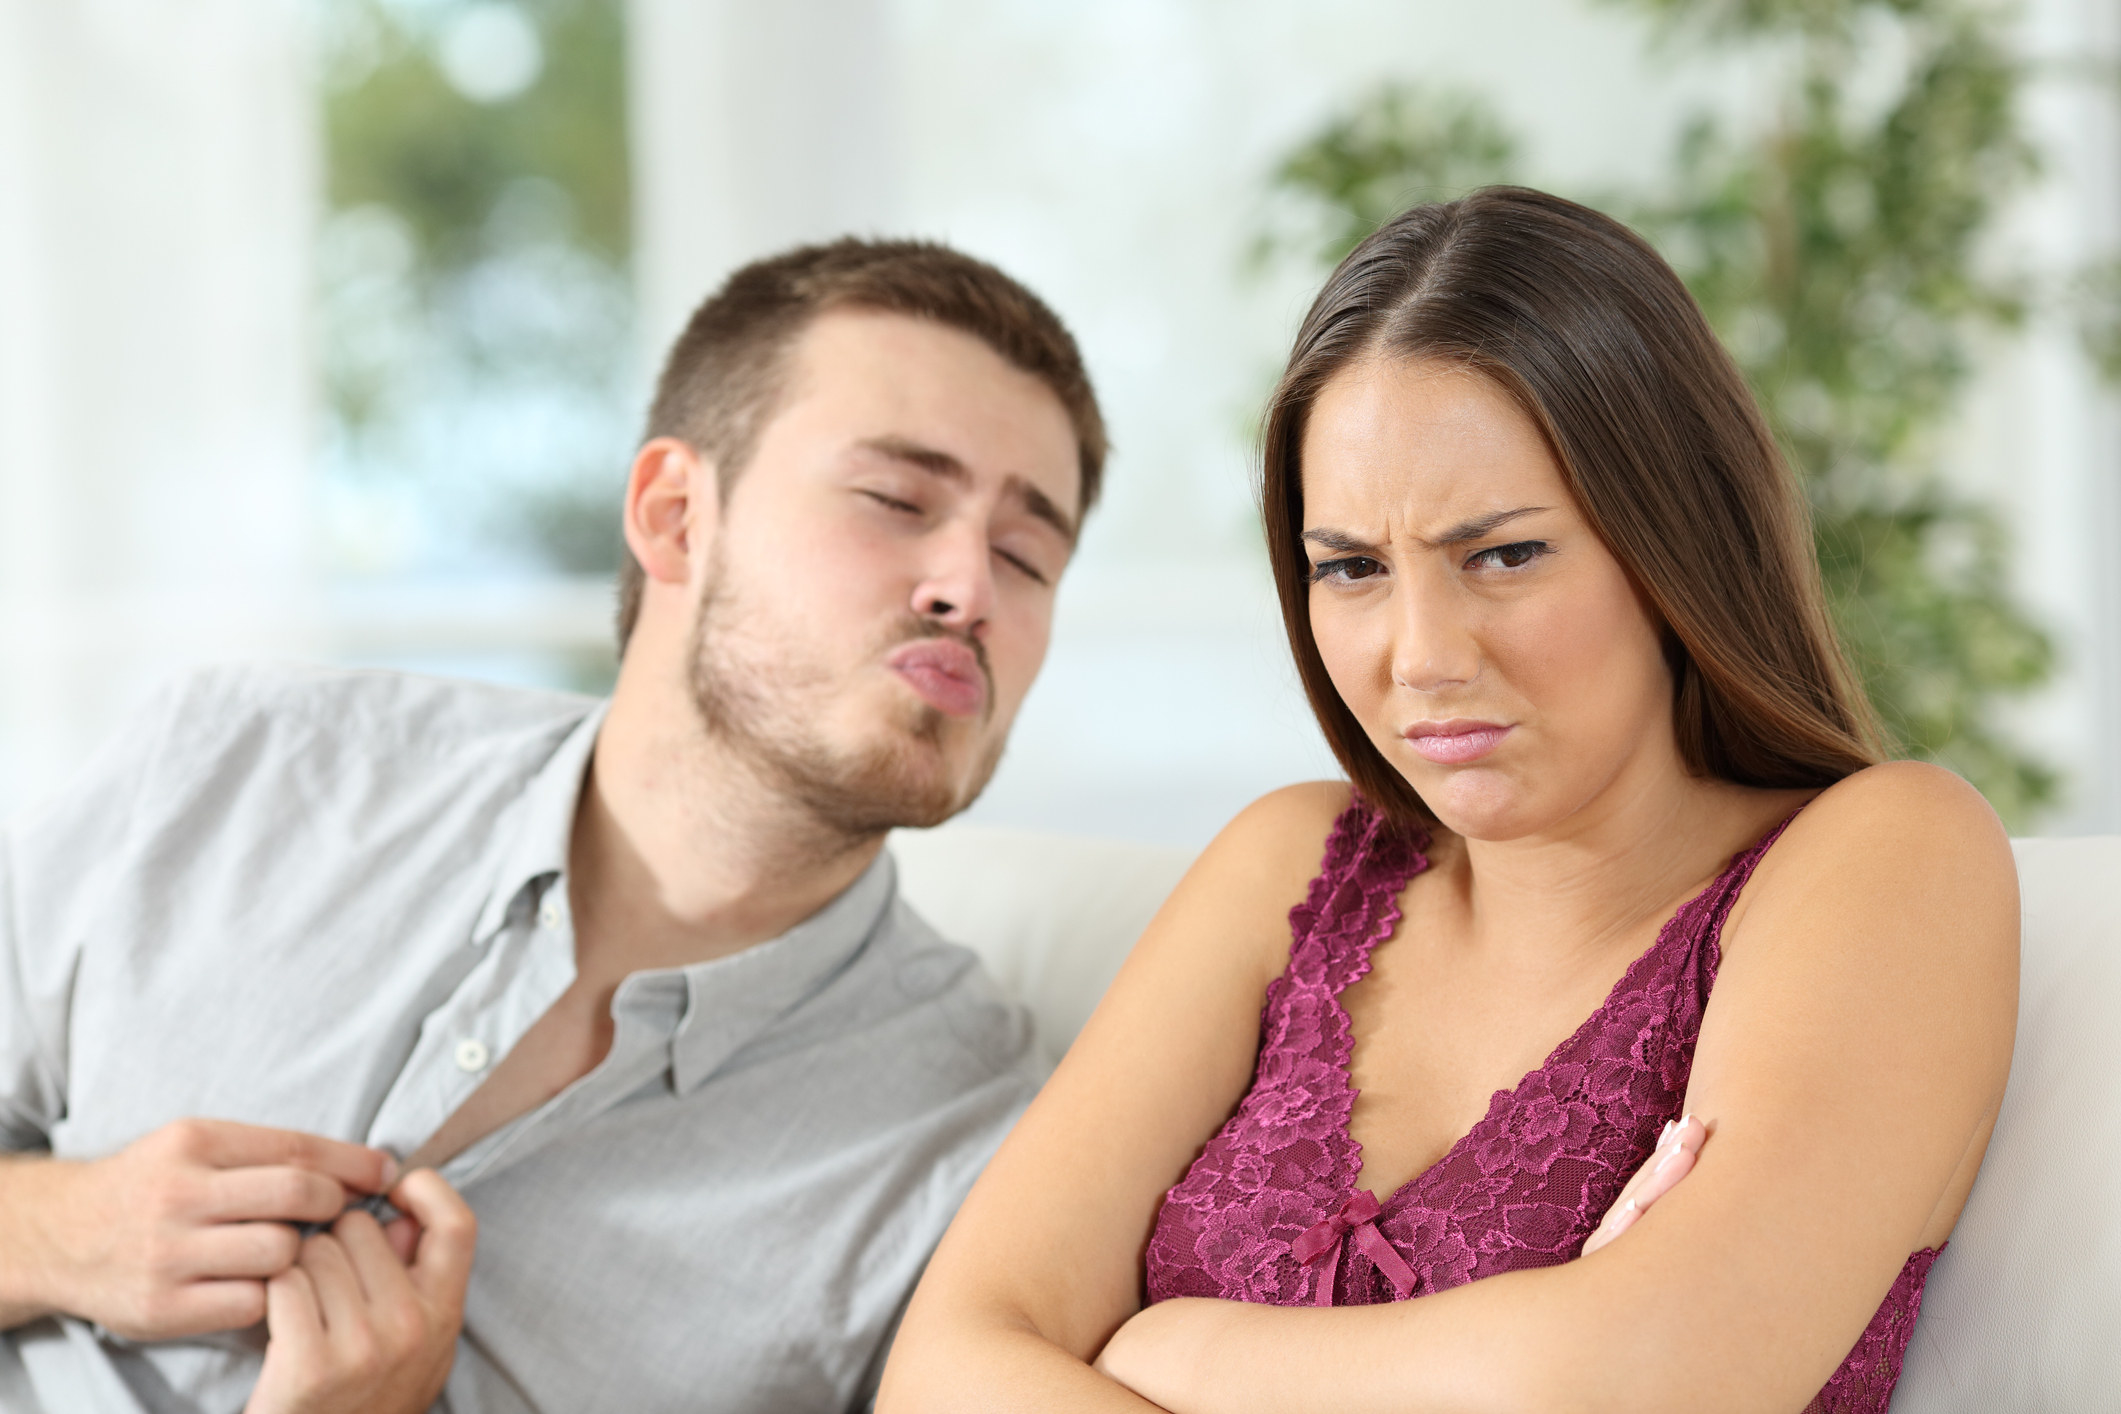 photo of a woman turning away from her brother in anger